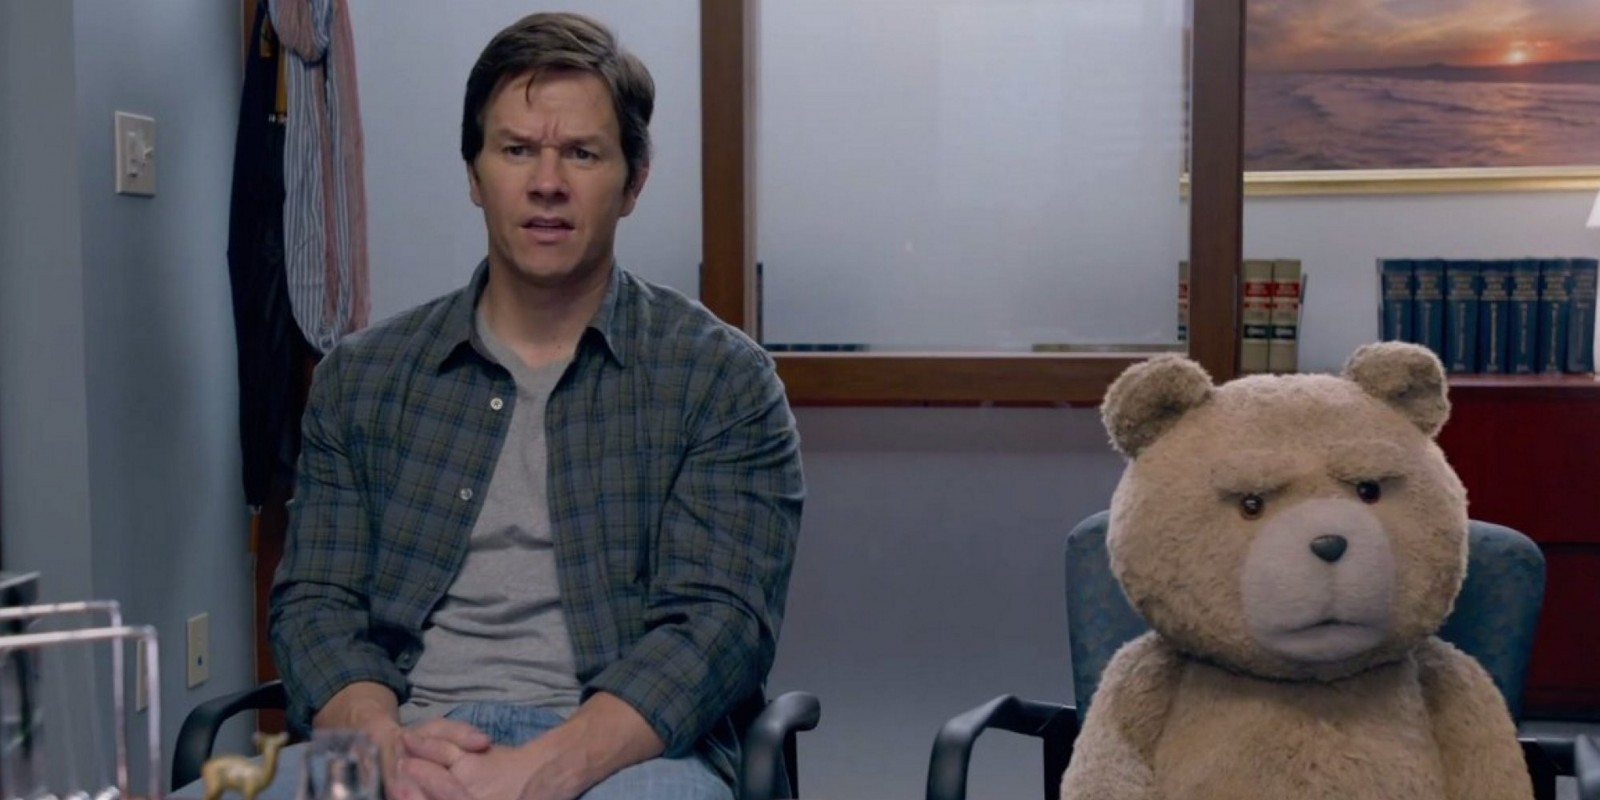 'Ted 2' is a hysterical sequel featuring an enabling Teddy Bear.